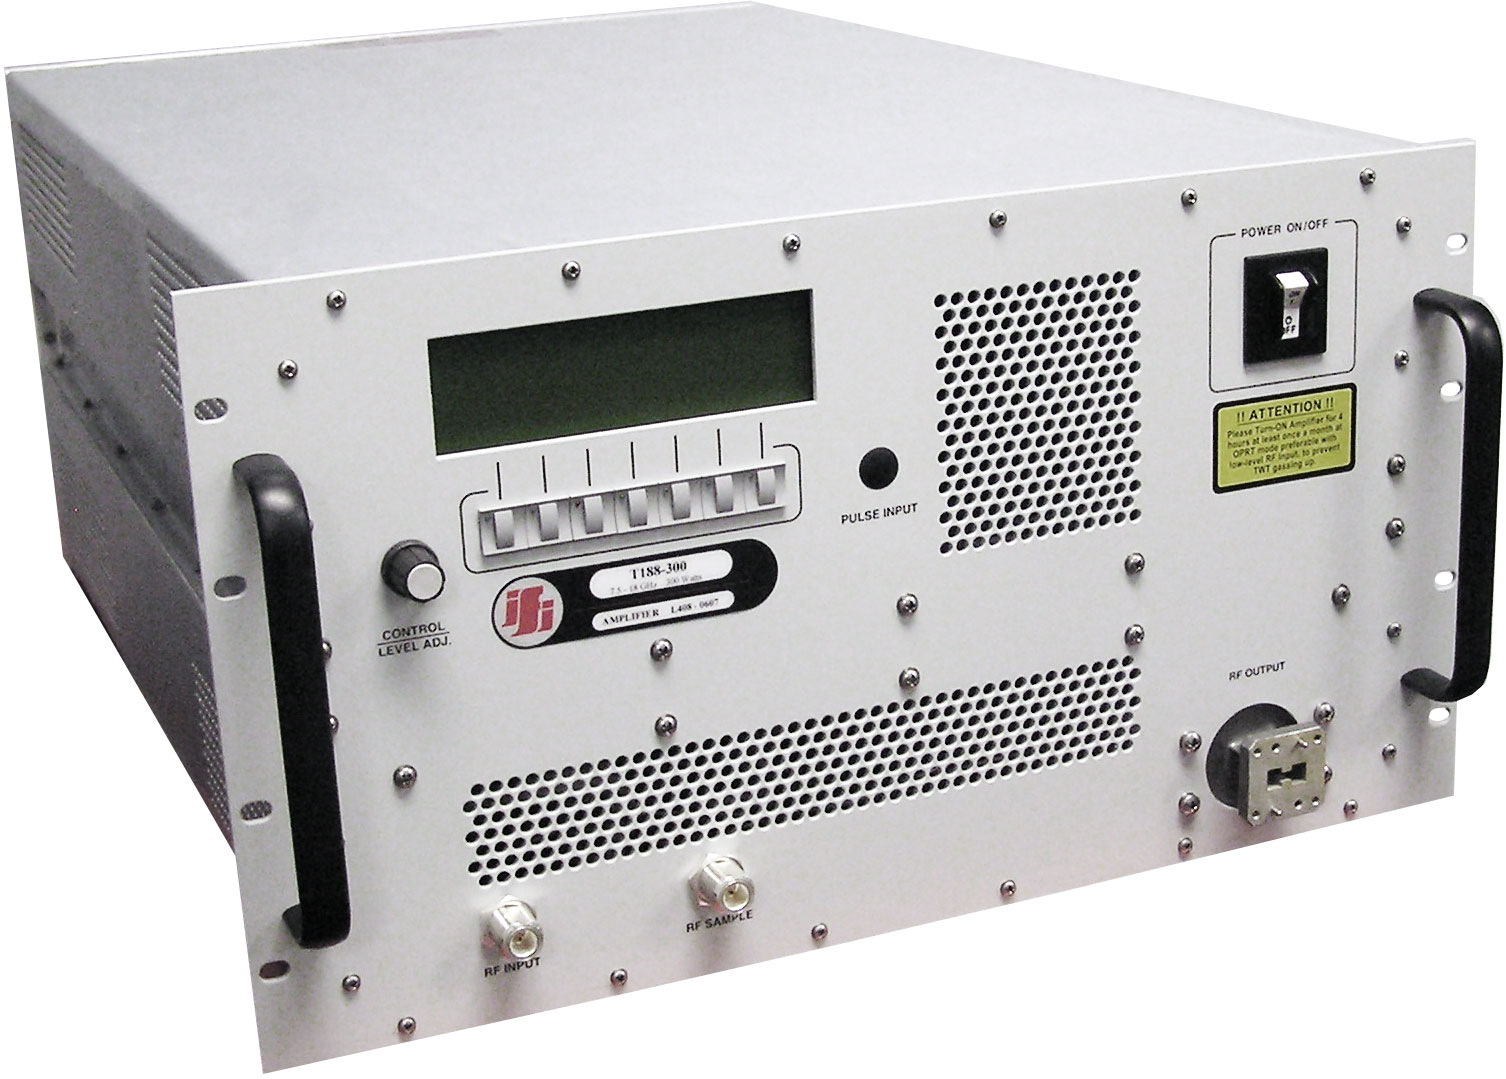 Rent IFI T188-300 TWT Amplifier 7.5 GHz - 18.0 GHz, 300 Watt